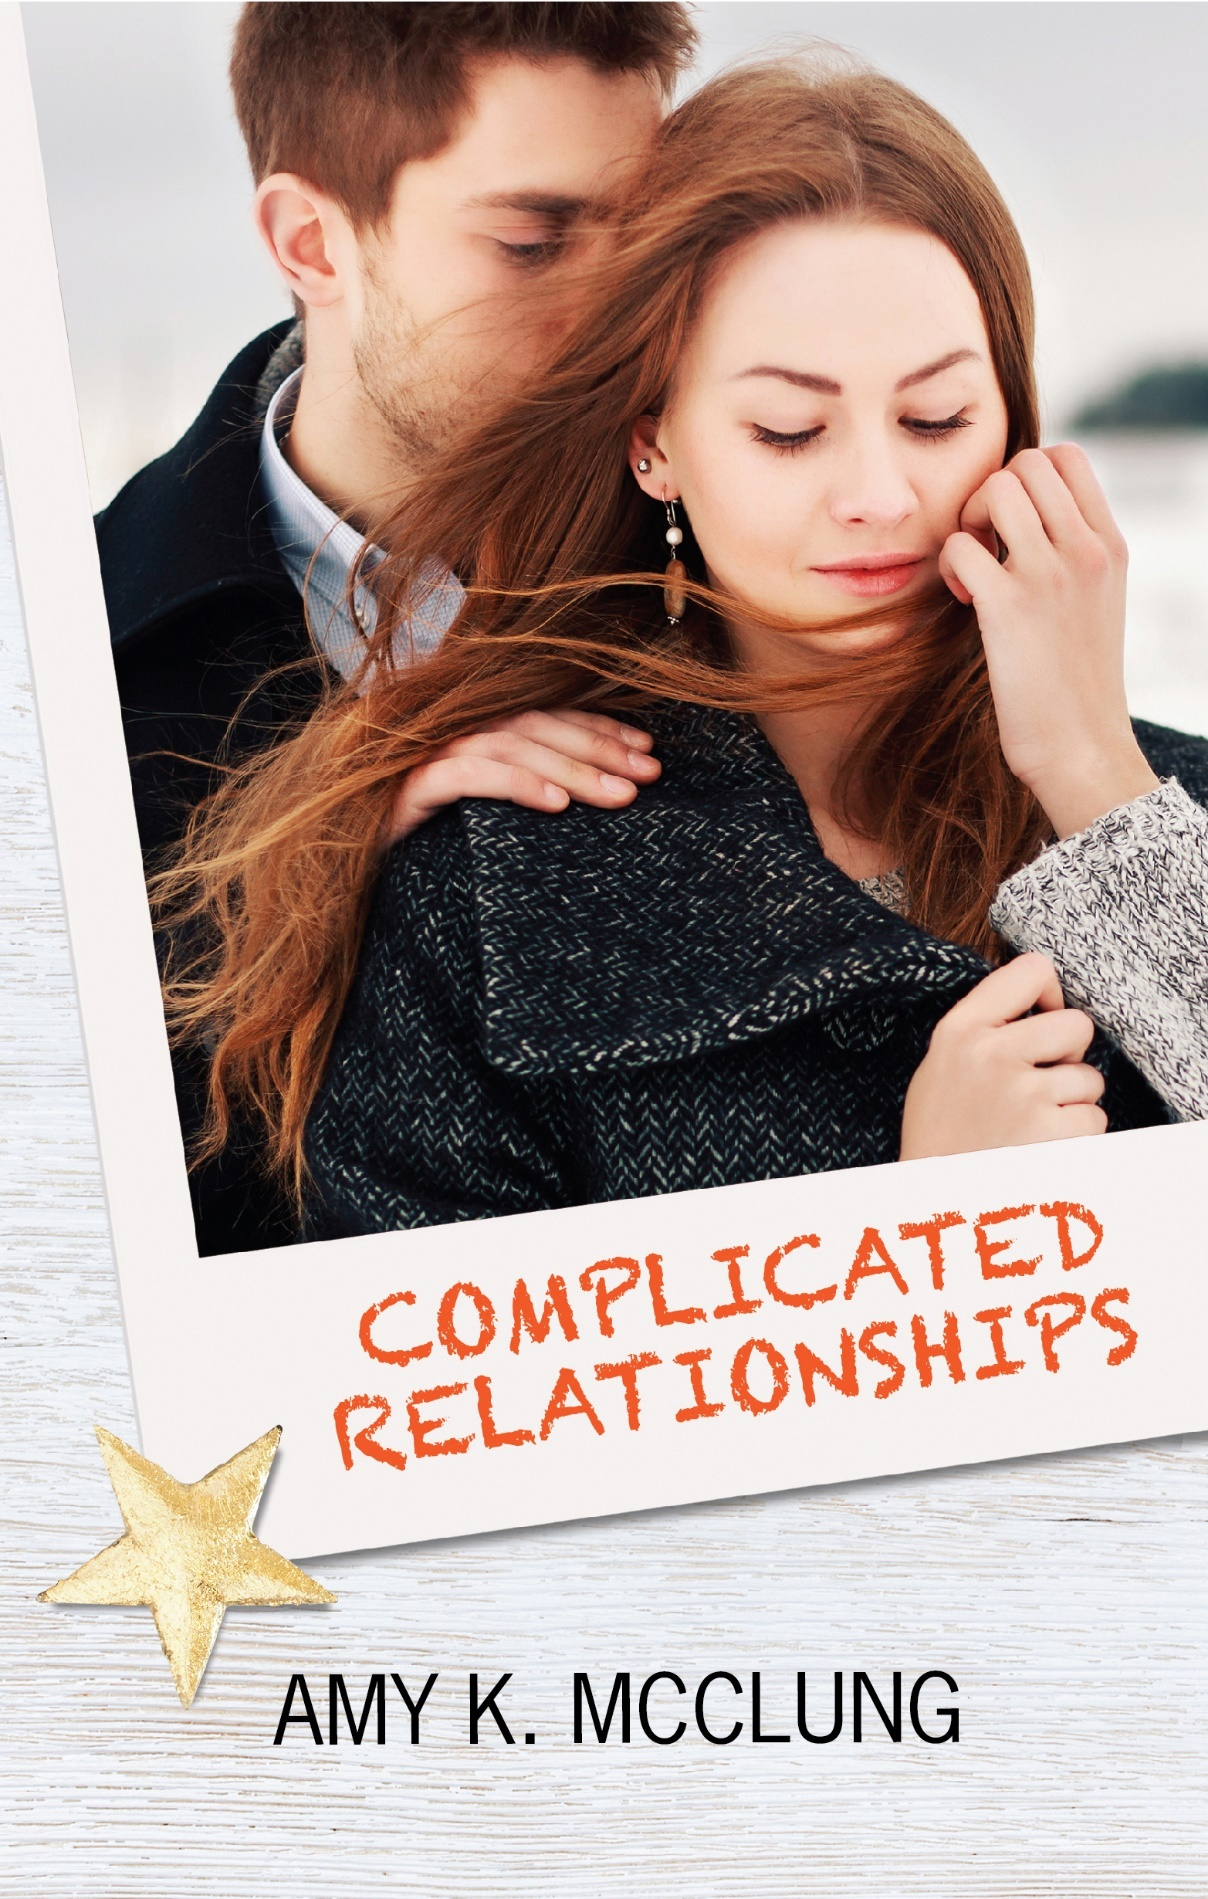 Mobi Complicated Relationship by Amy K. McClung